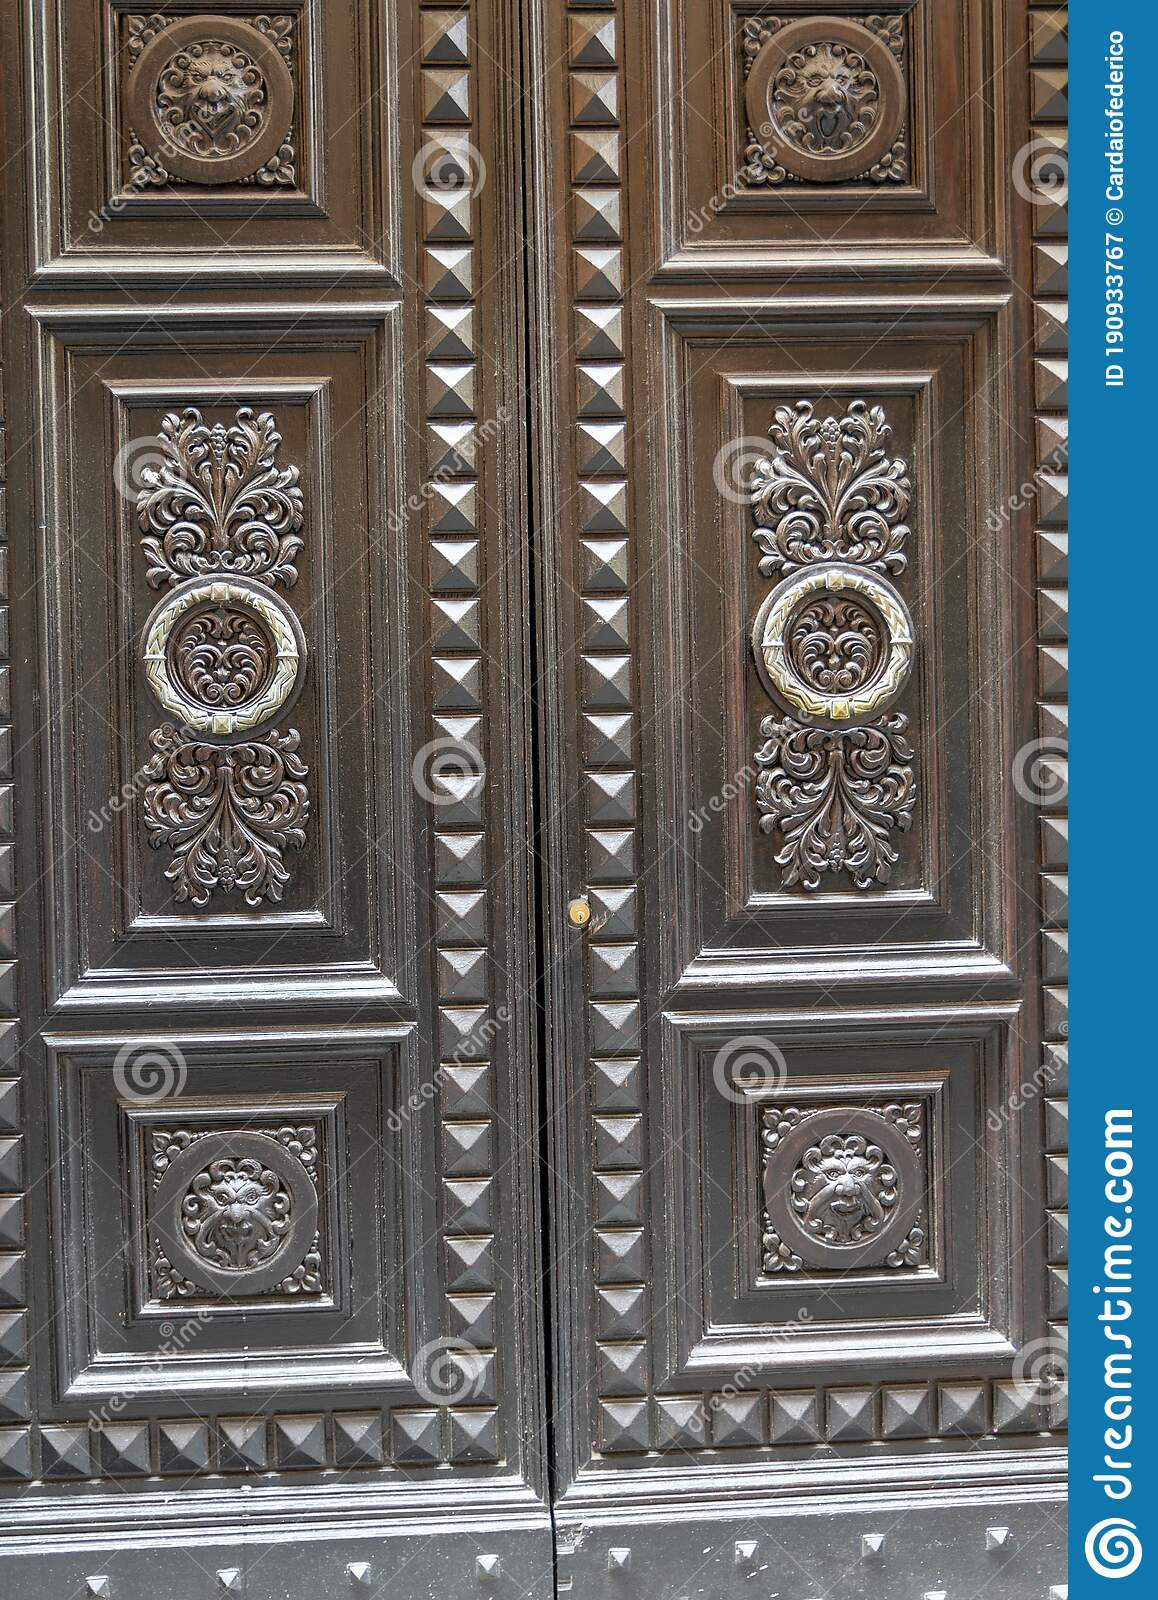 138 Armored Doors Photos Free Royalty Free Stock Photos From Dreamstime